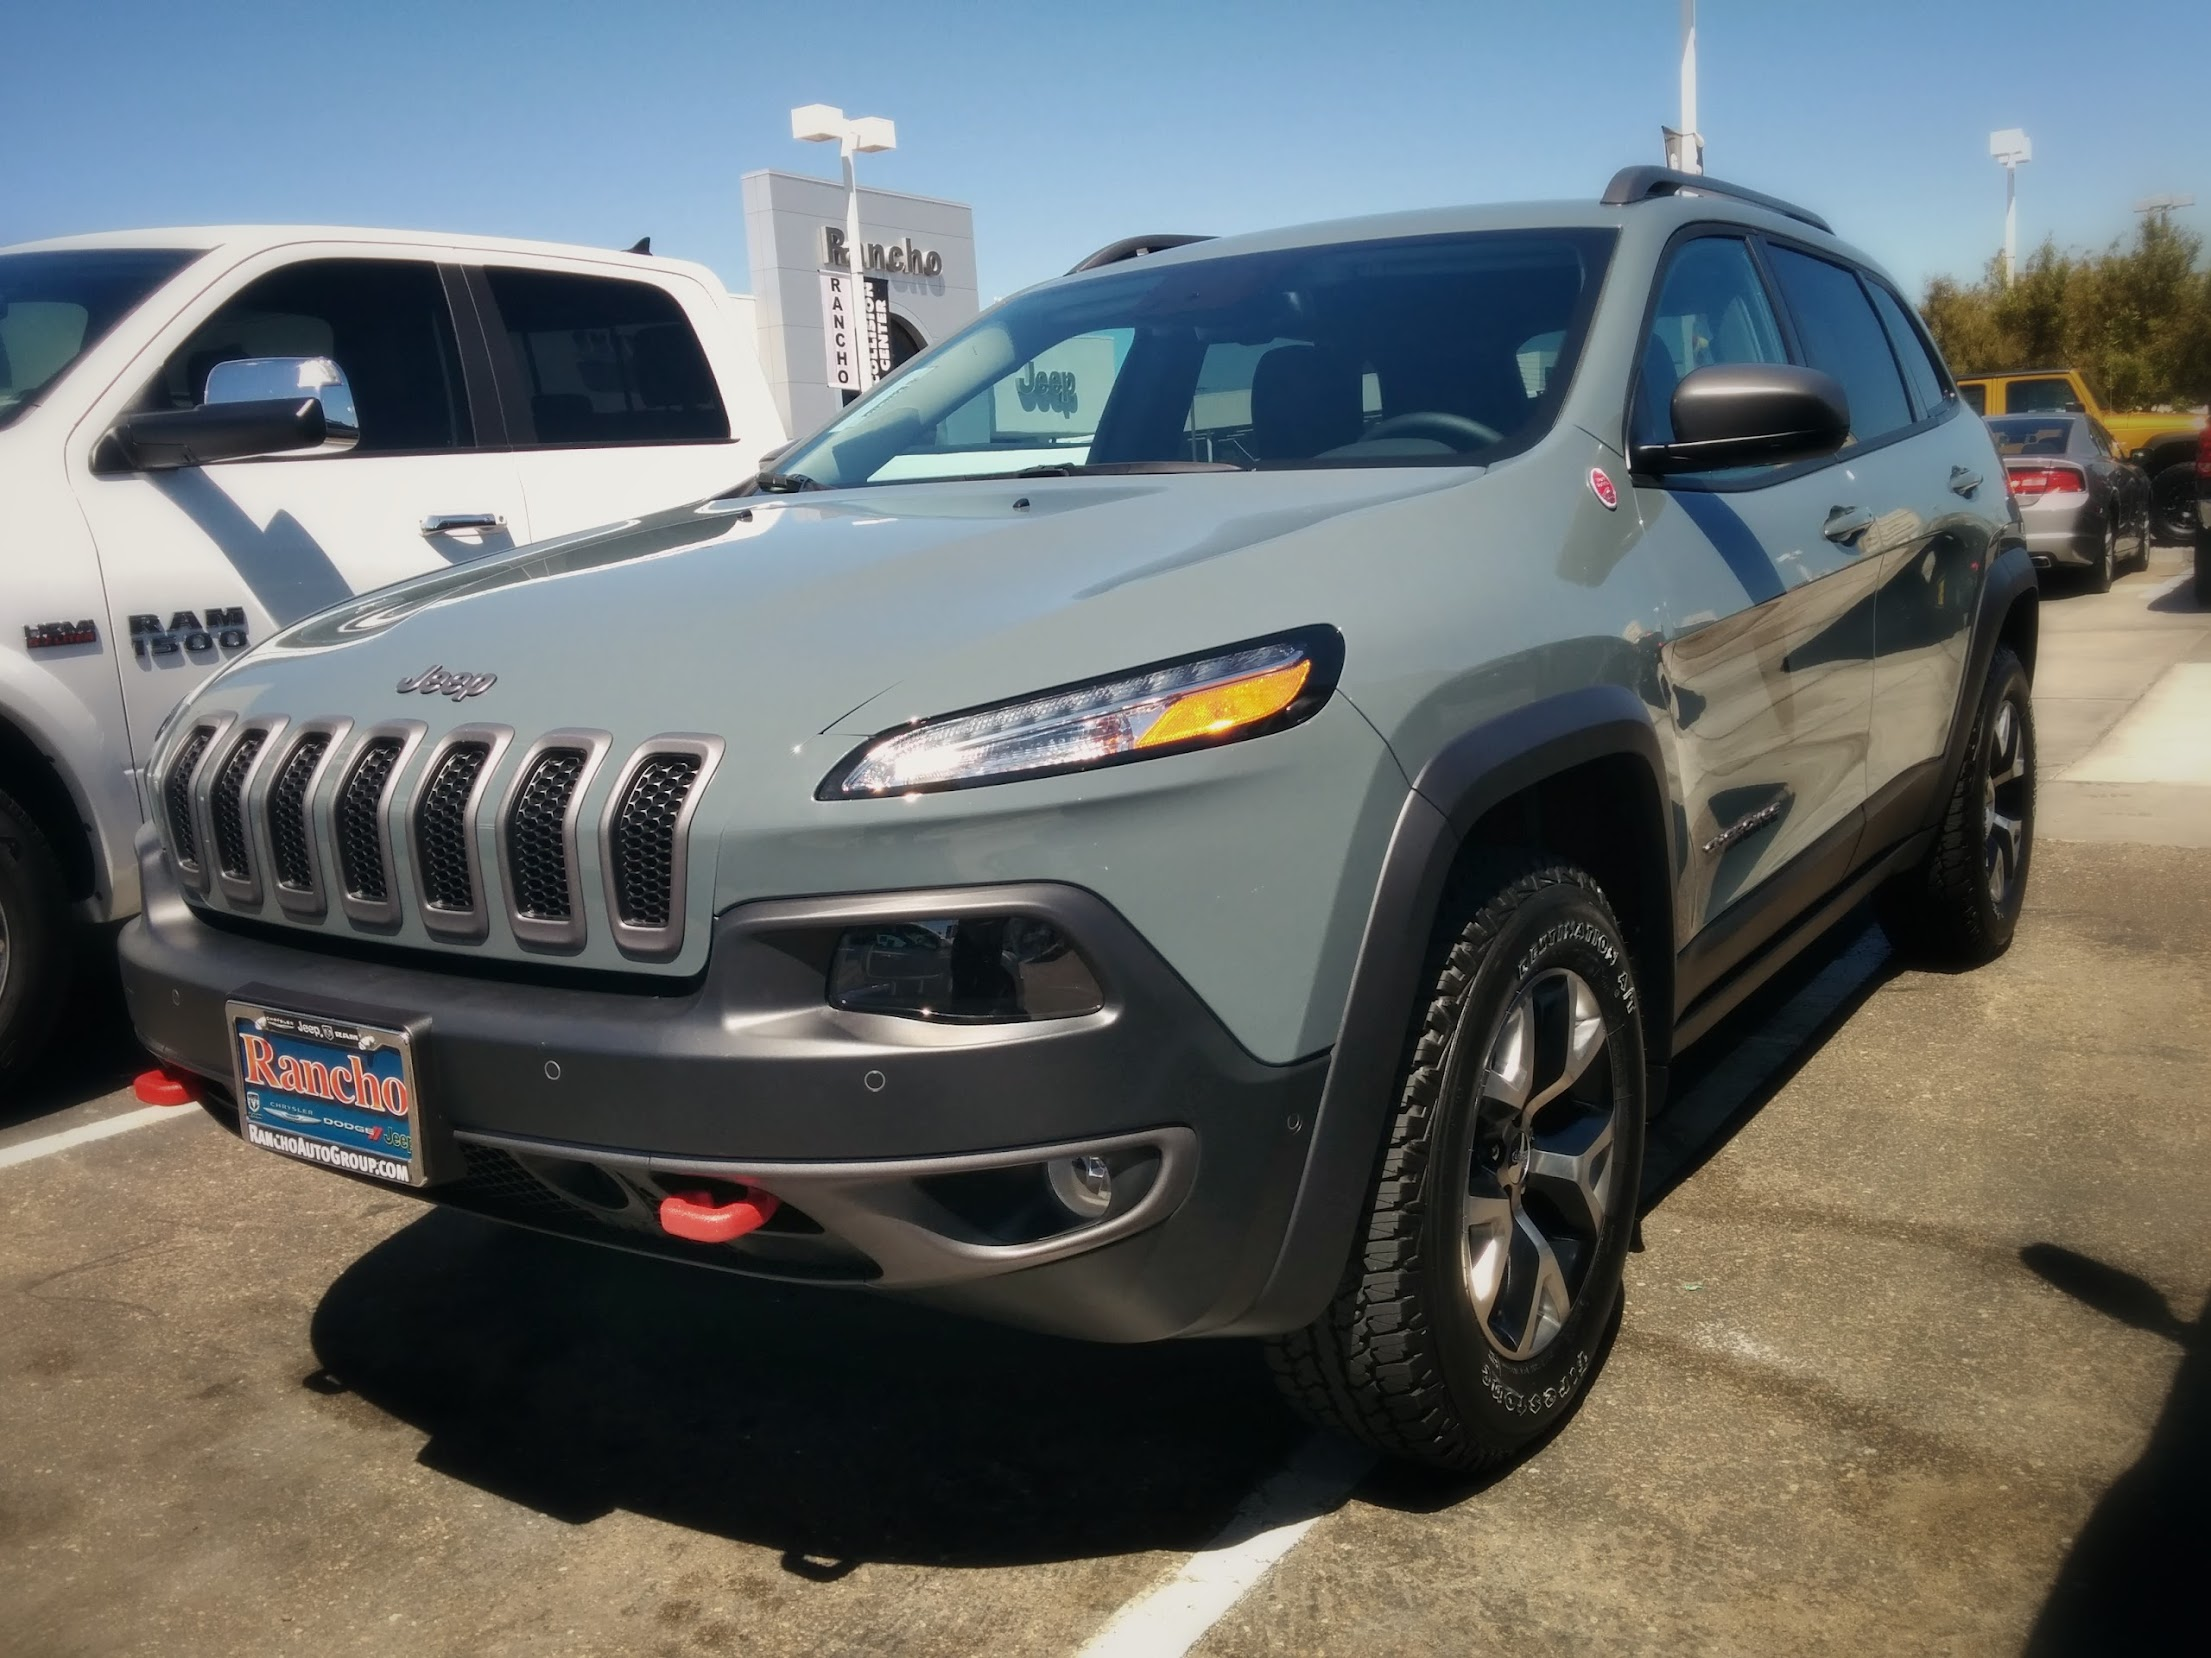 van 39 s trailhawk chronicle 2014 jeep cherokee forums. Black Bedroom Furniture Sets. Home Design Ideas